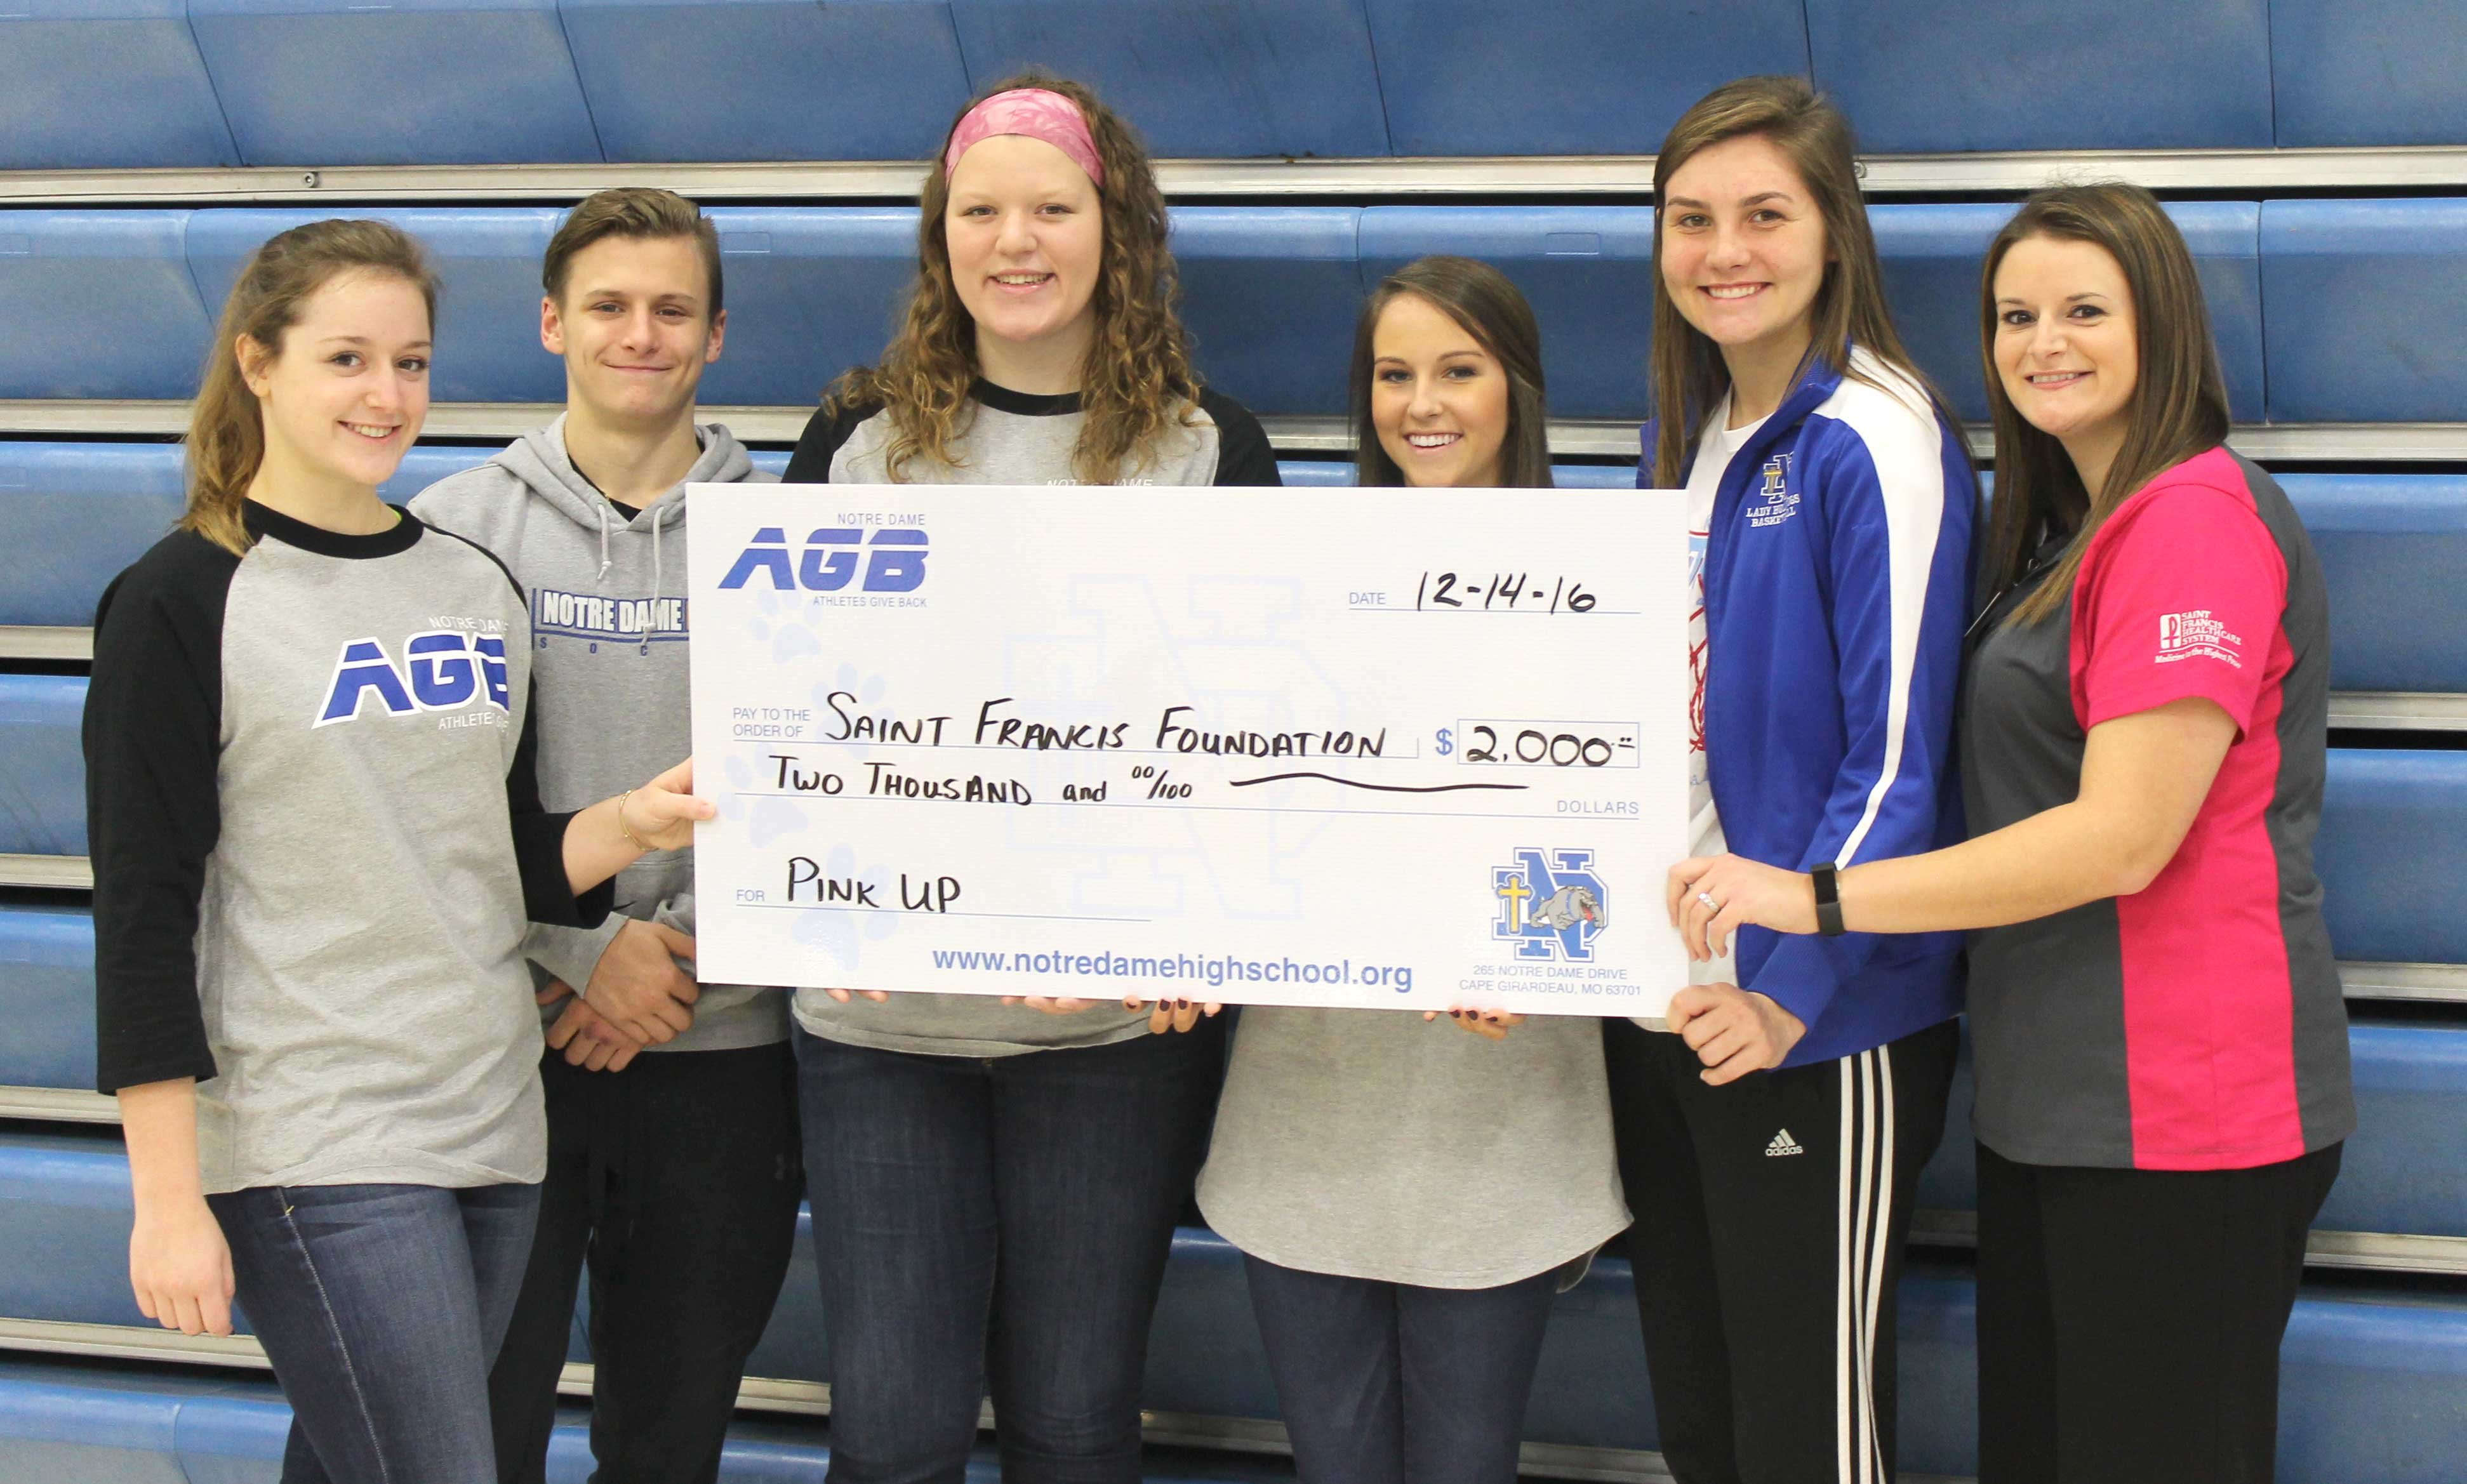 Cape Girardeau Mo Athletes Give Back Notre Dame Regional High School Agb